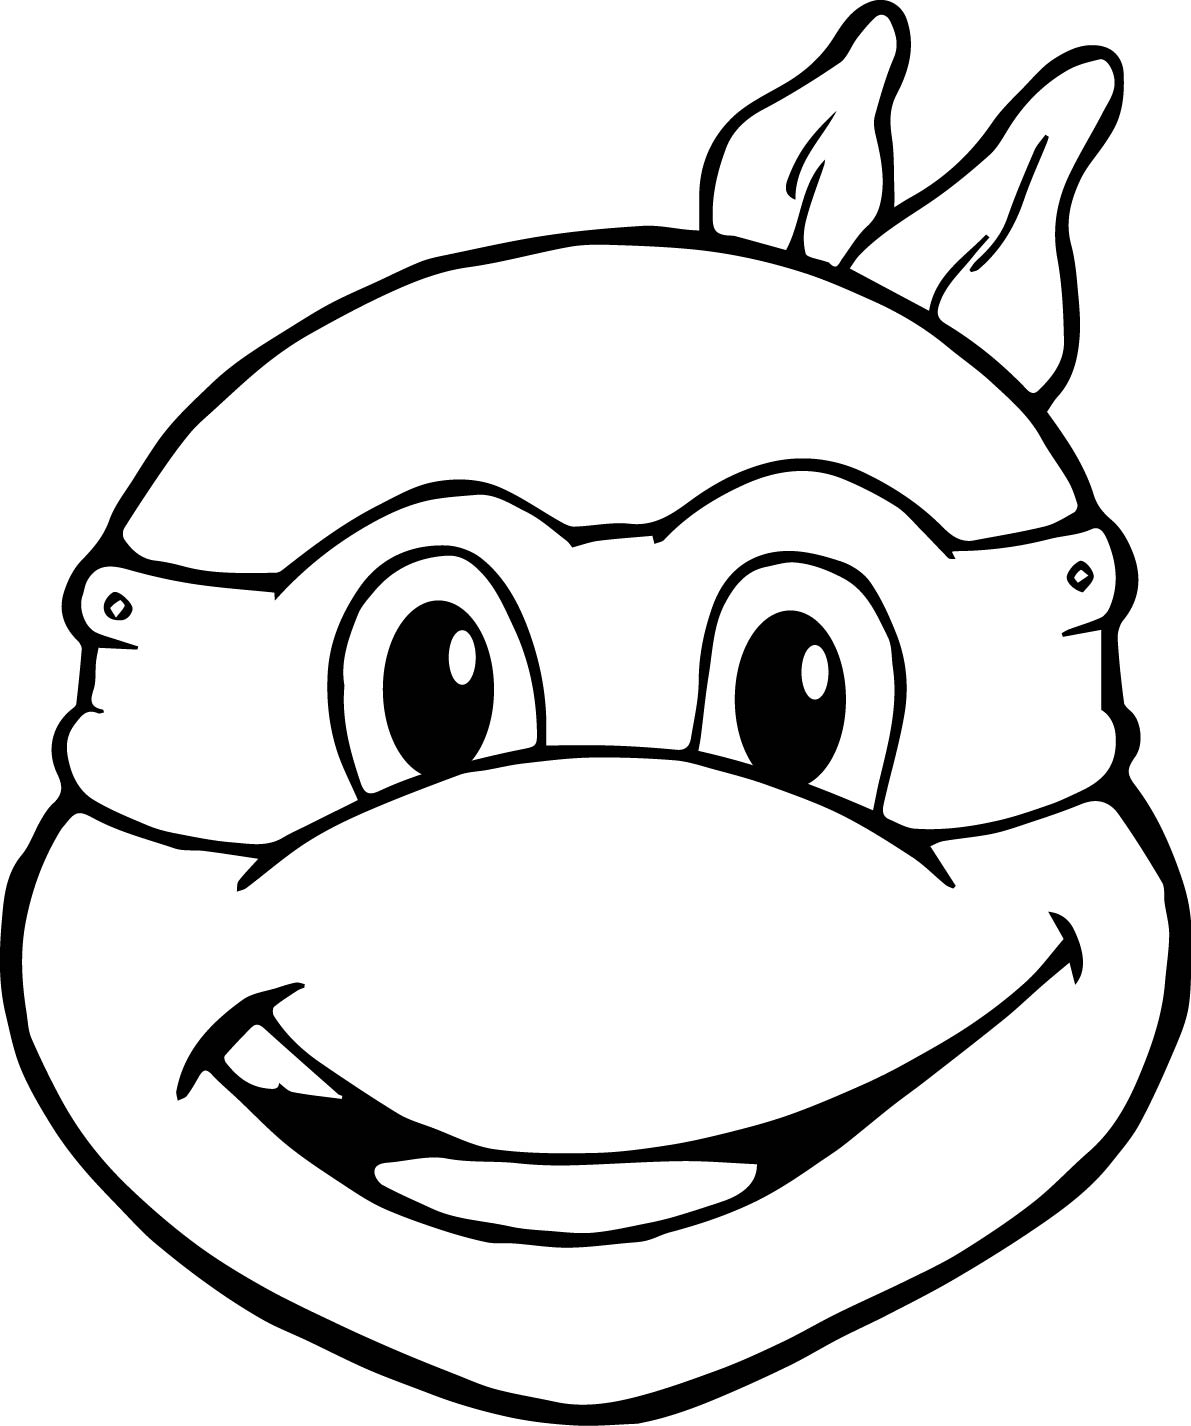 Baby Ninja Turtle Coloring Pages At Getcolorings